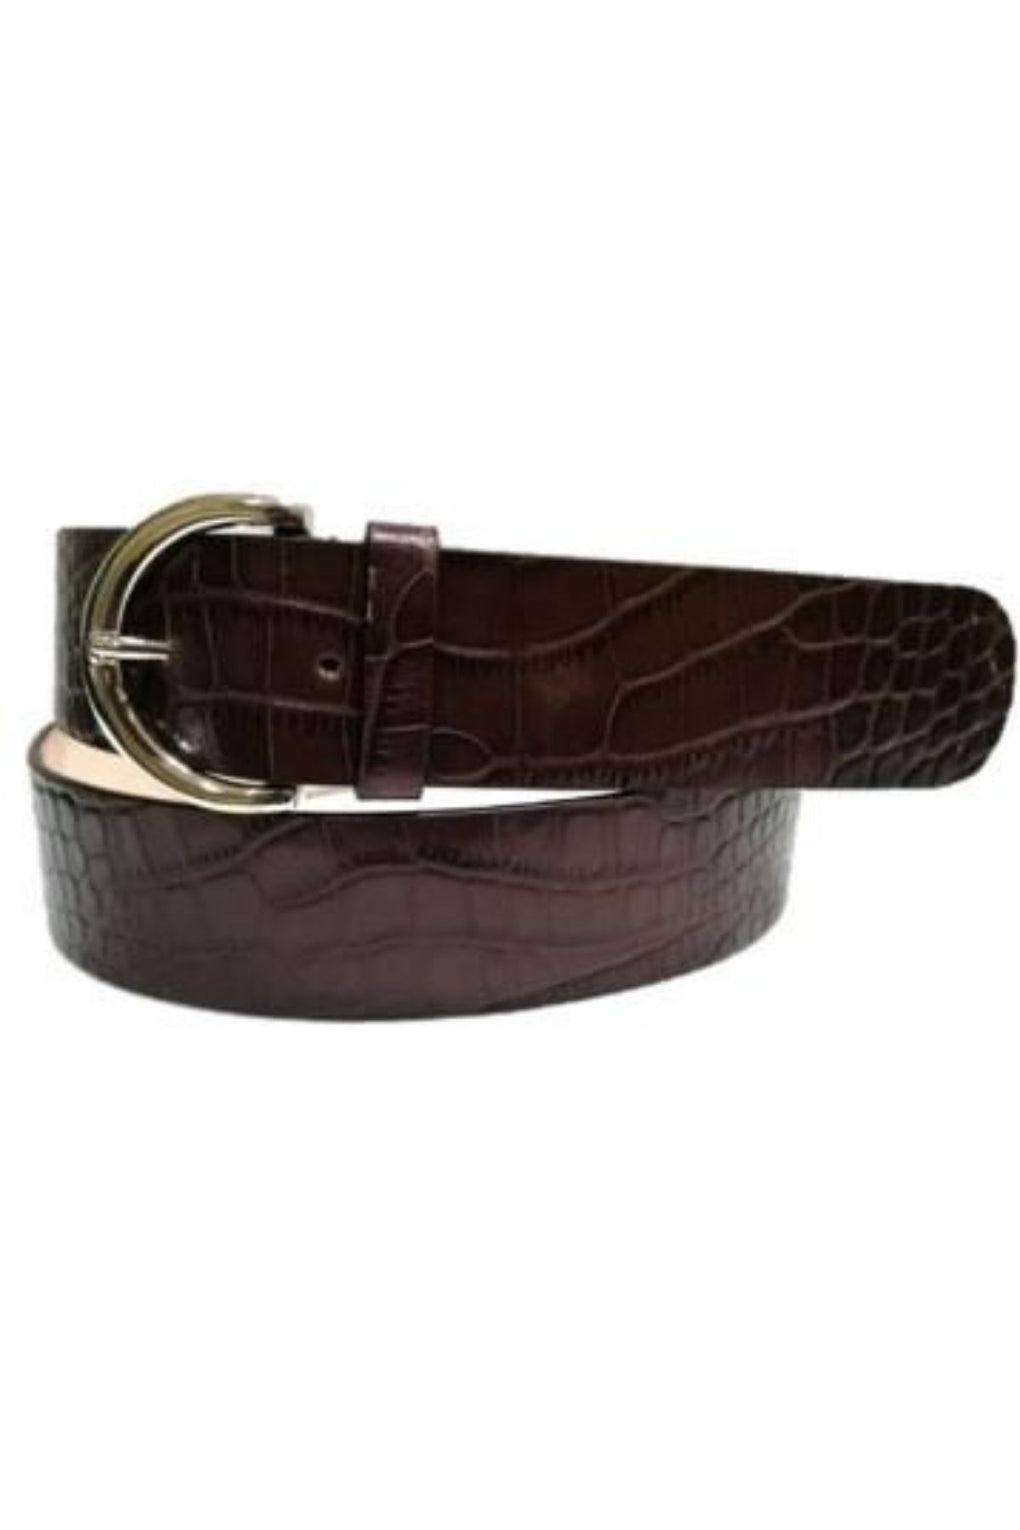 Crocodile Skin Leather Belt  (SE-1652)